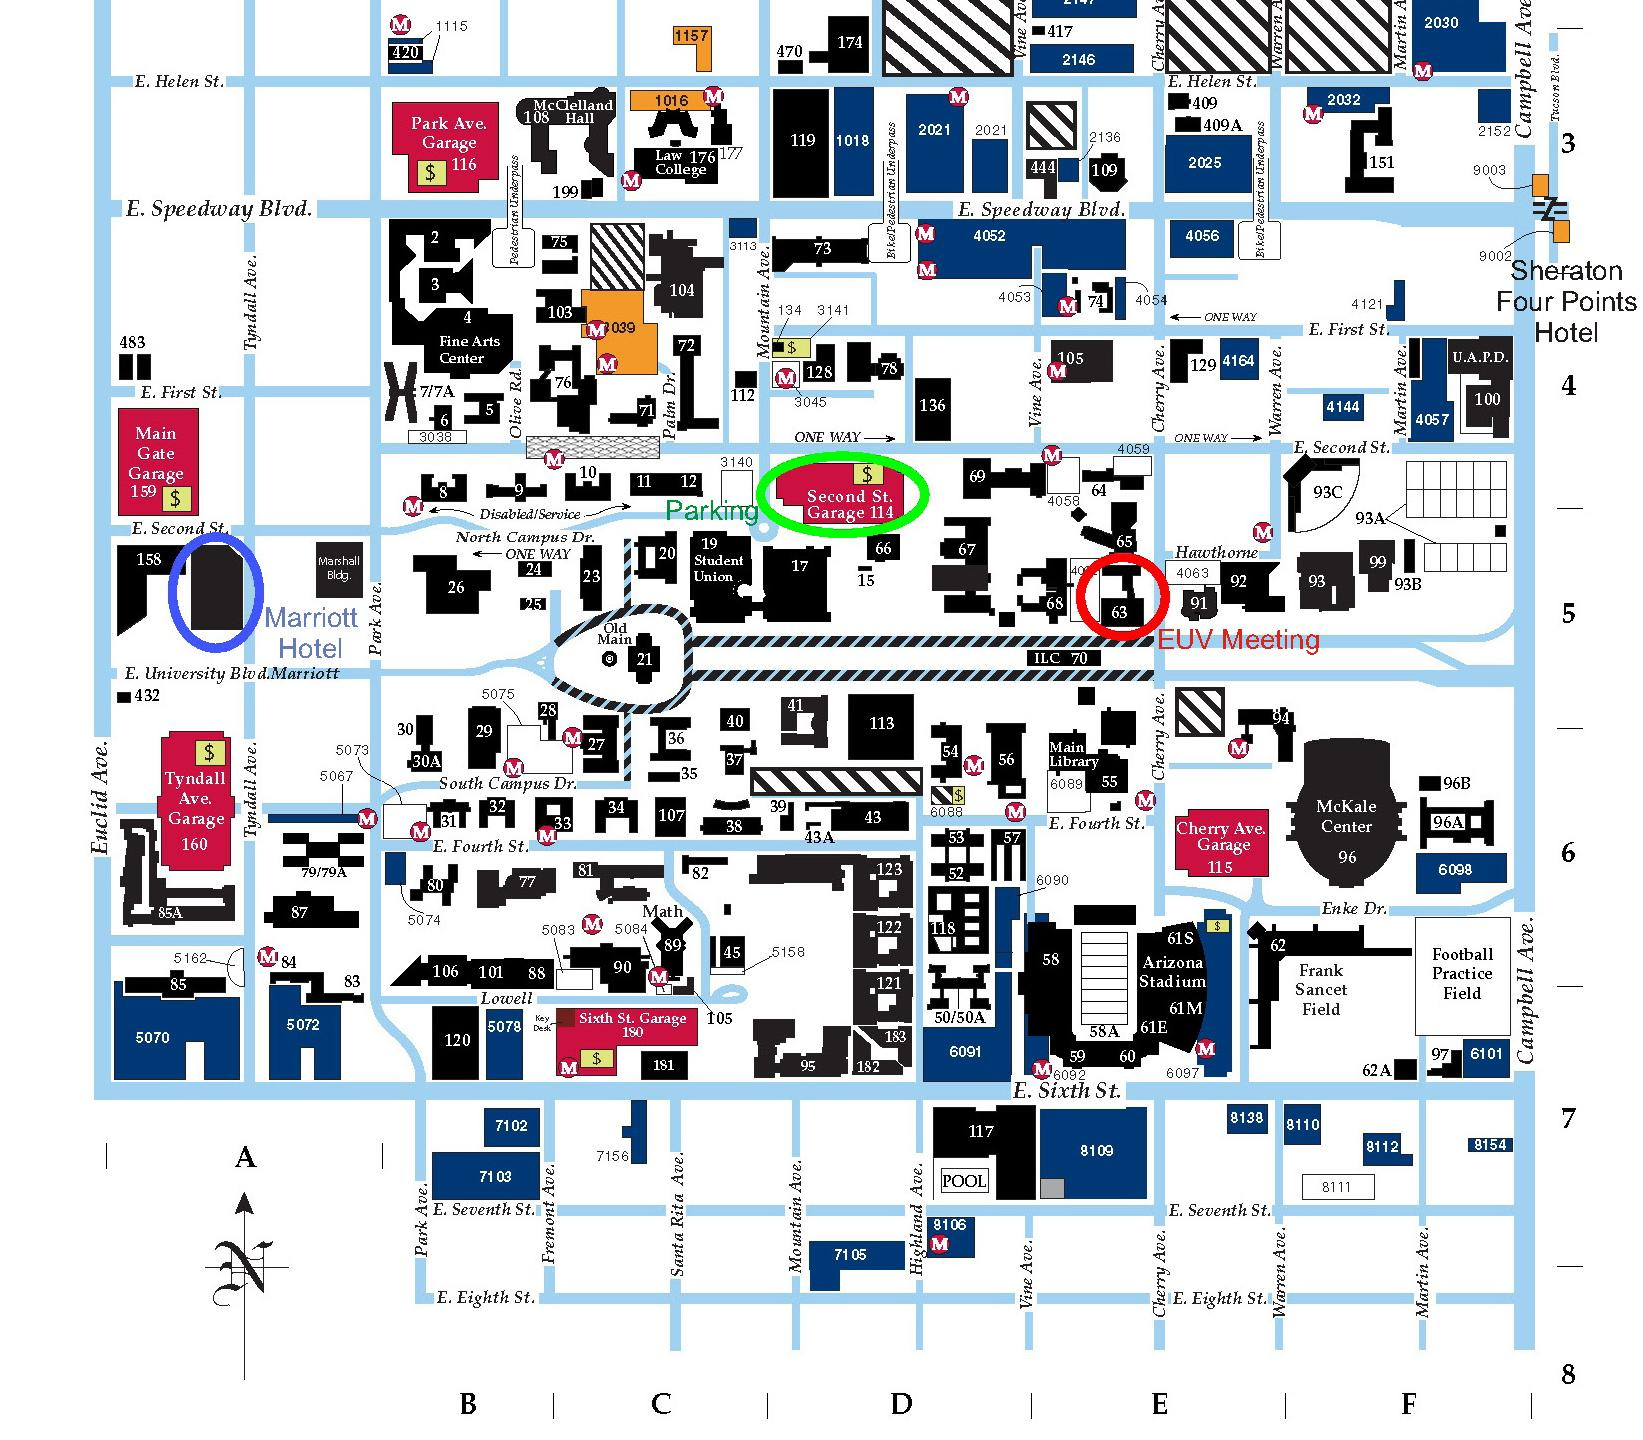 u of az campus map University Of Arizona Campus Map Afp Cv